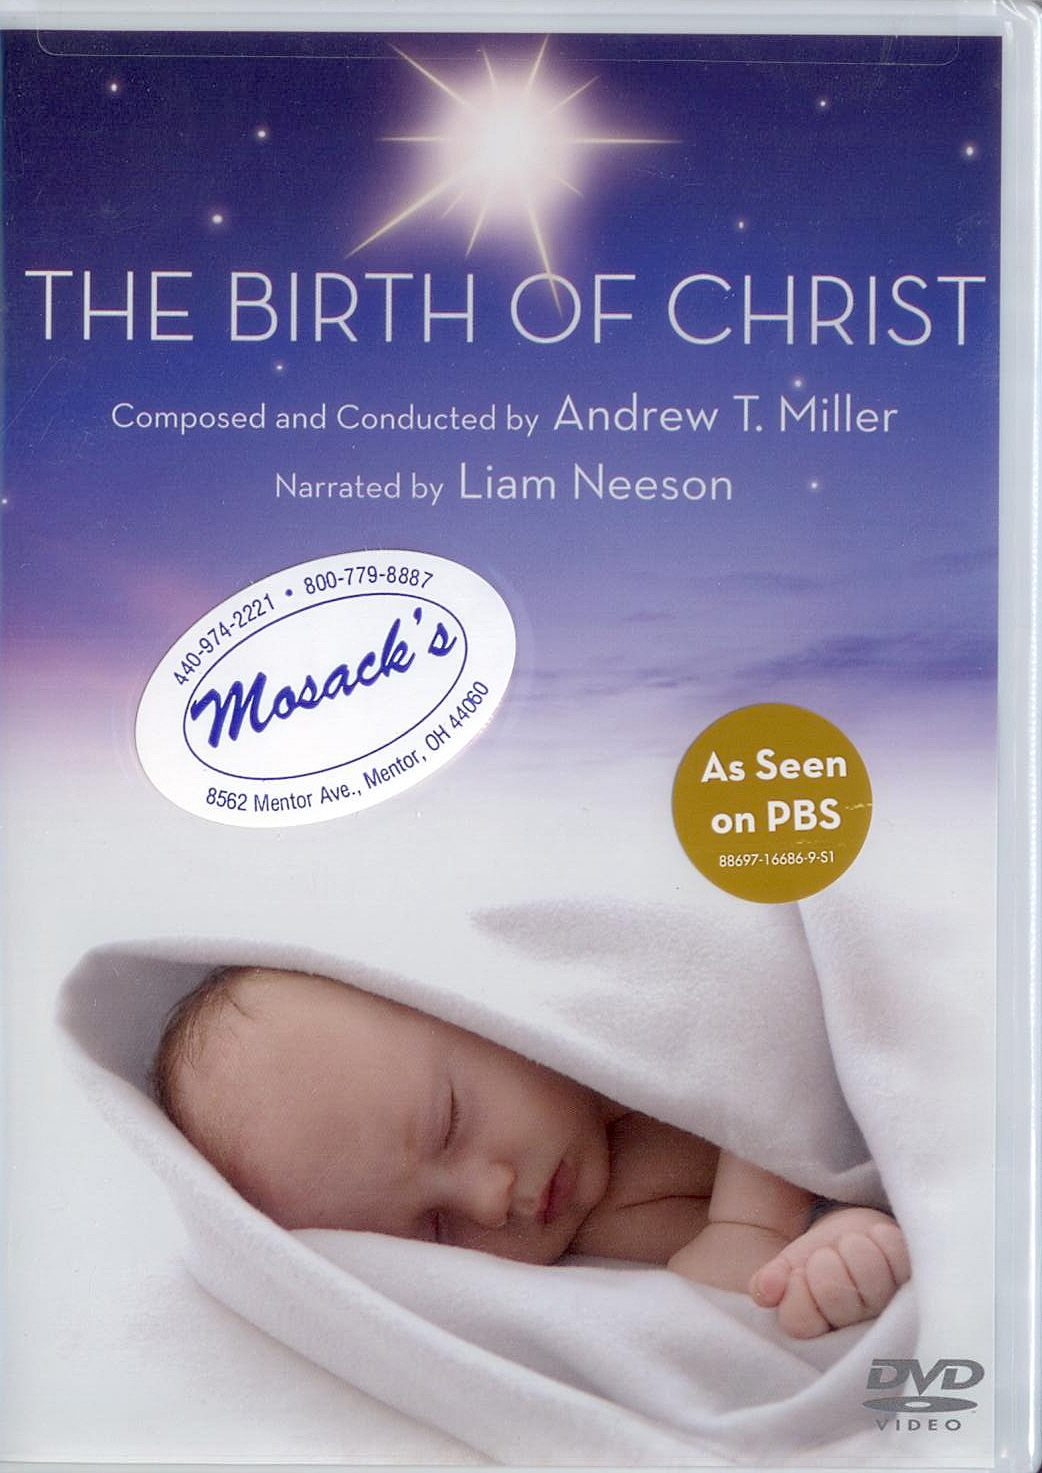 DVD-The Birth of Christ, Title: Andrew T. Miller, Composer/Conductor